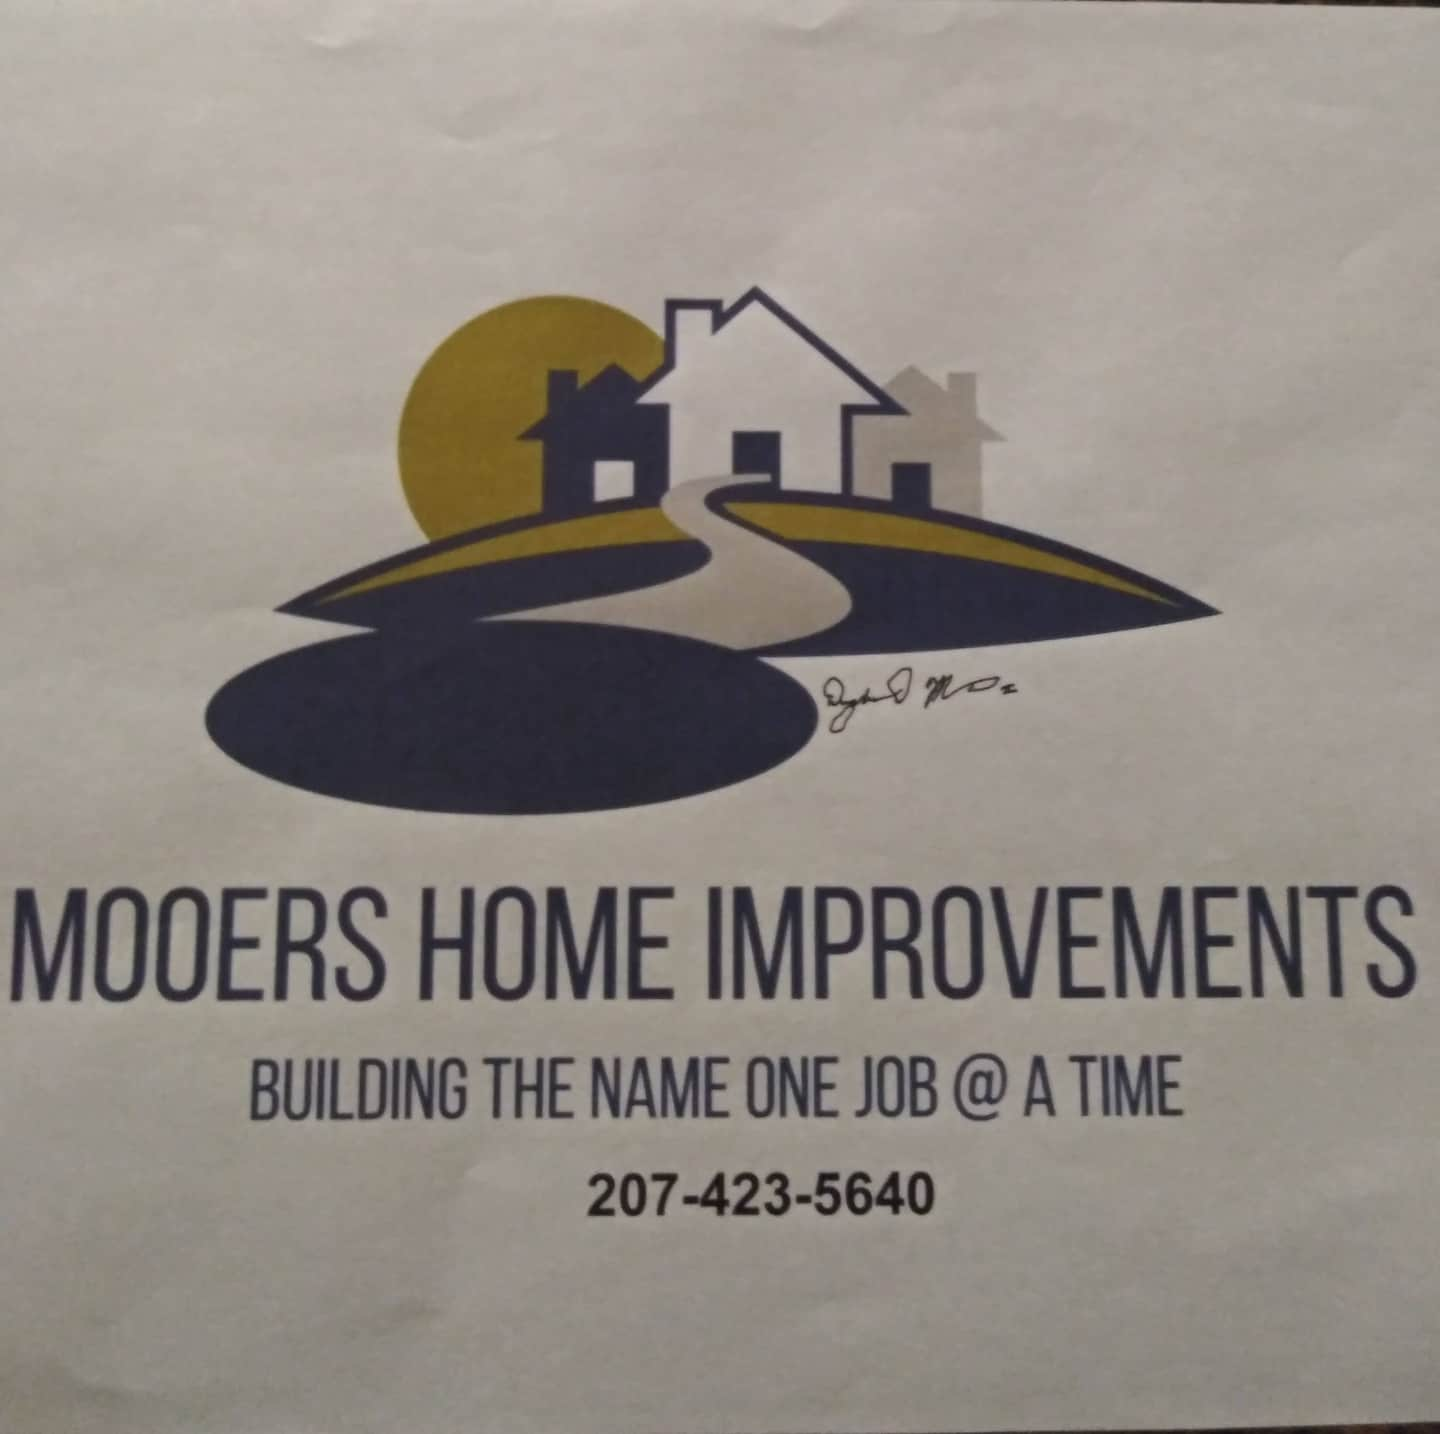 Mooers (than just) Home Improvements